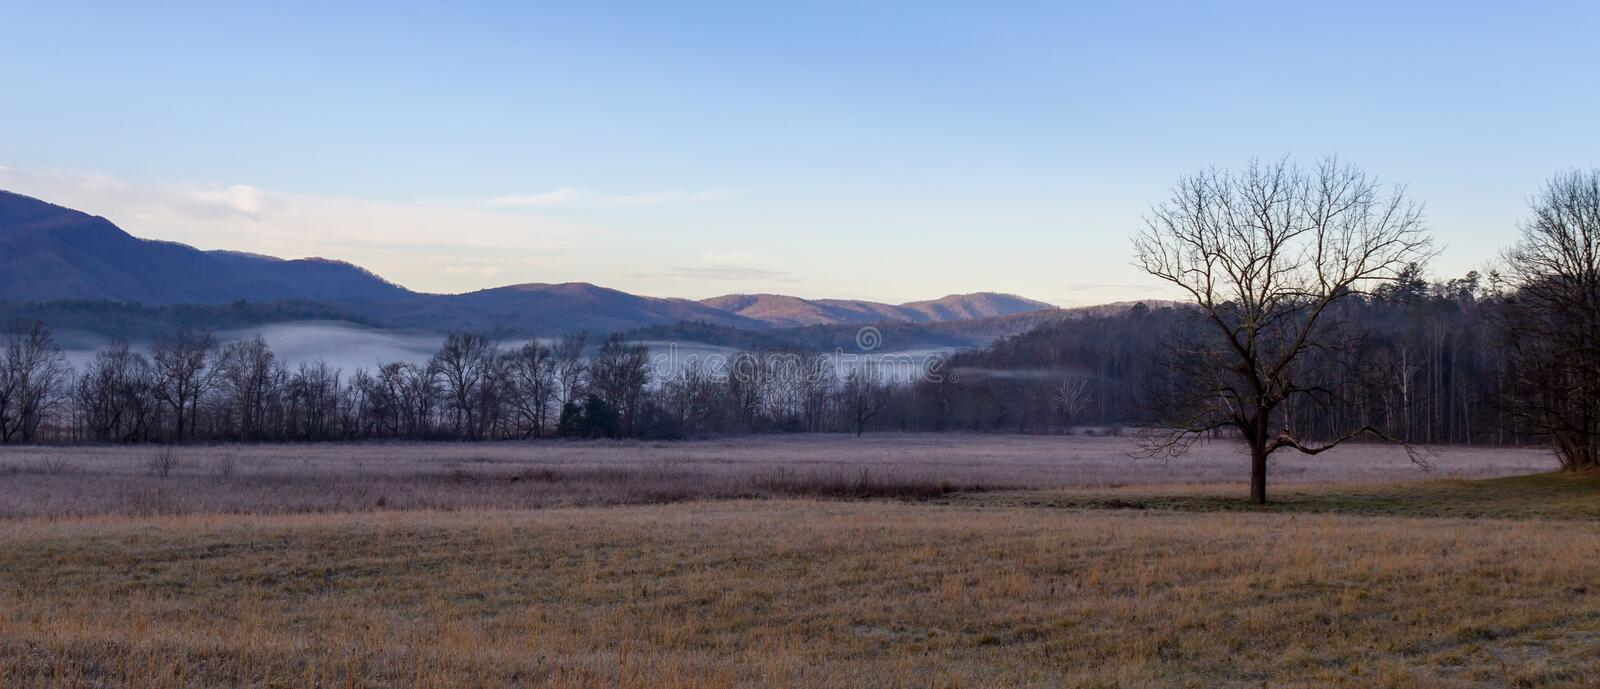 Foggy cades cove morning in great smoky mountains national park stock photography